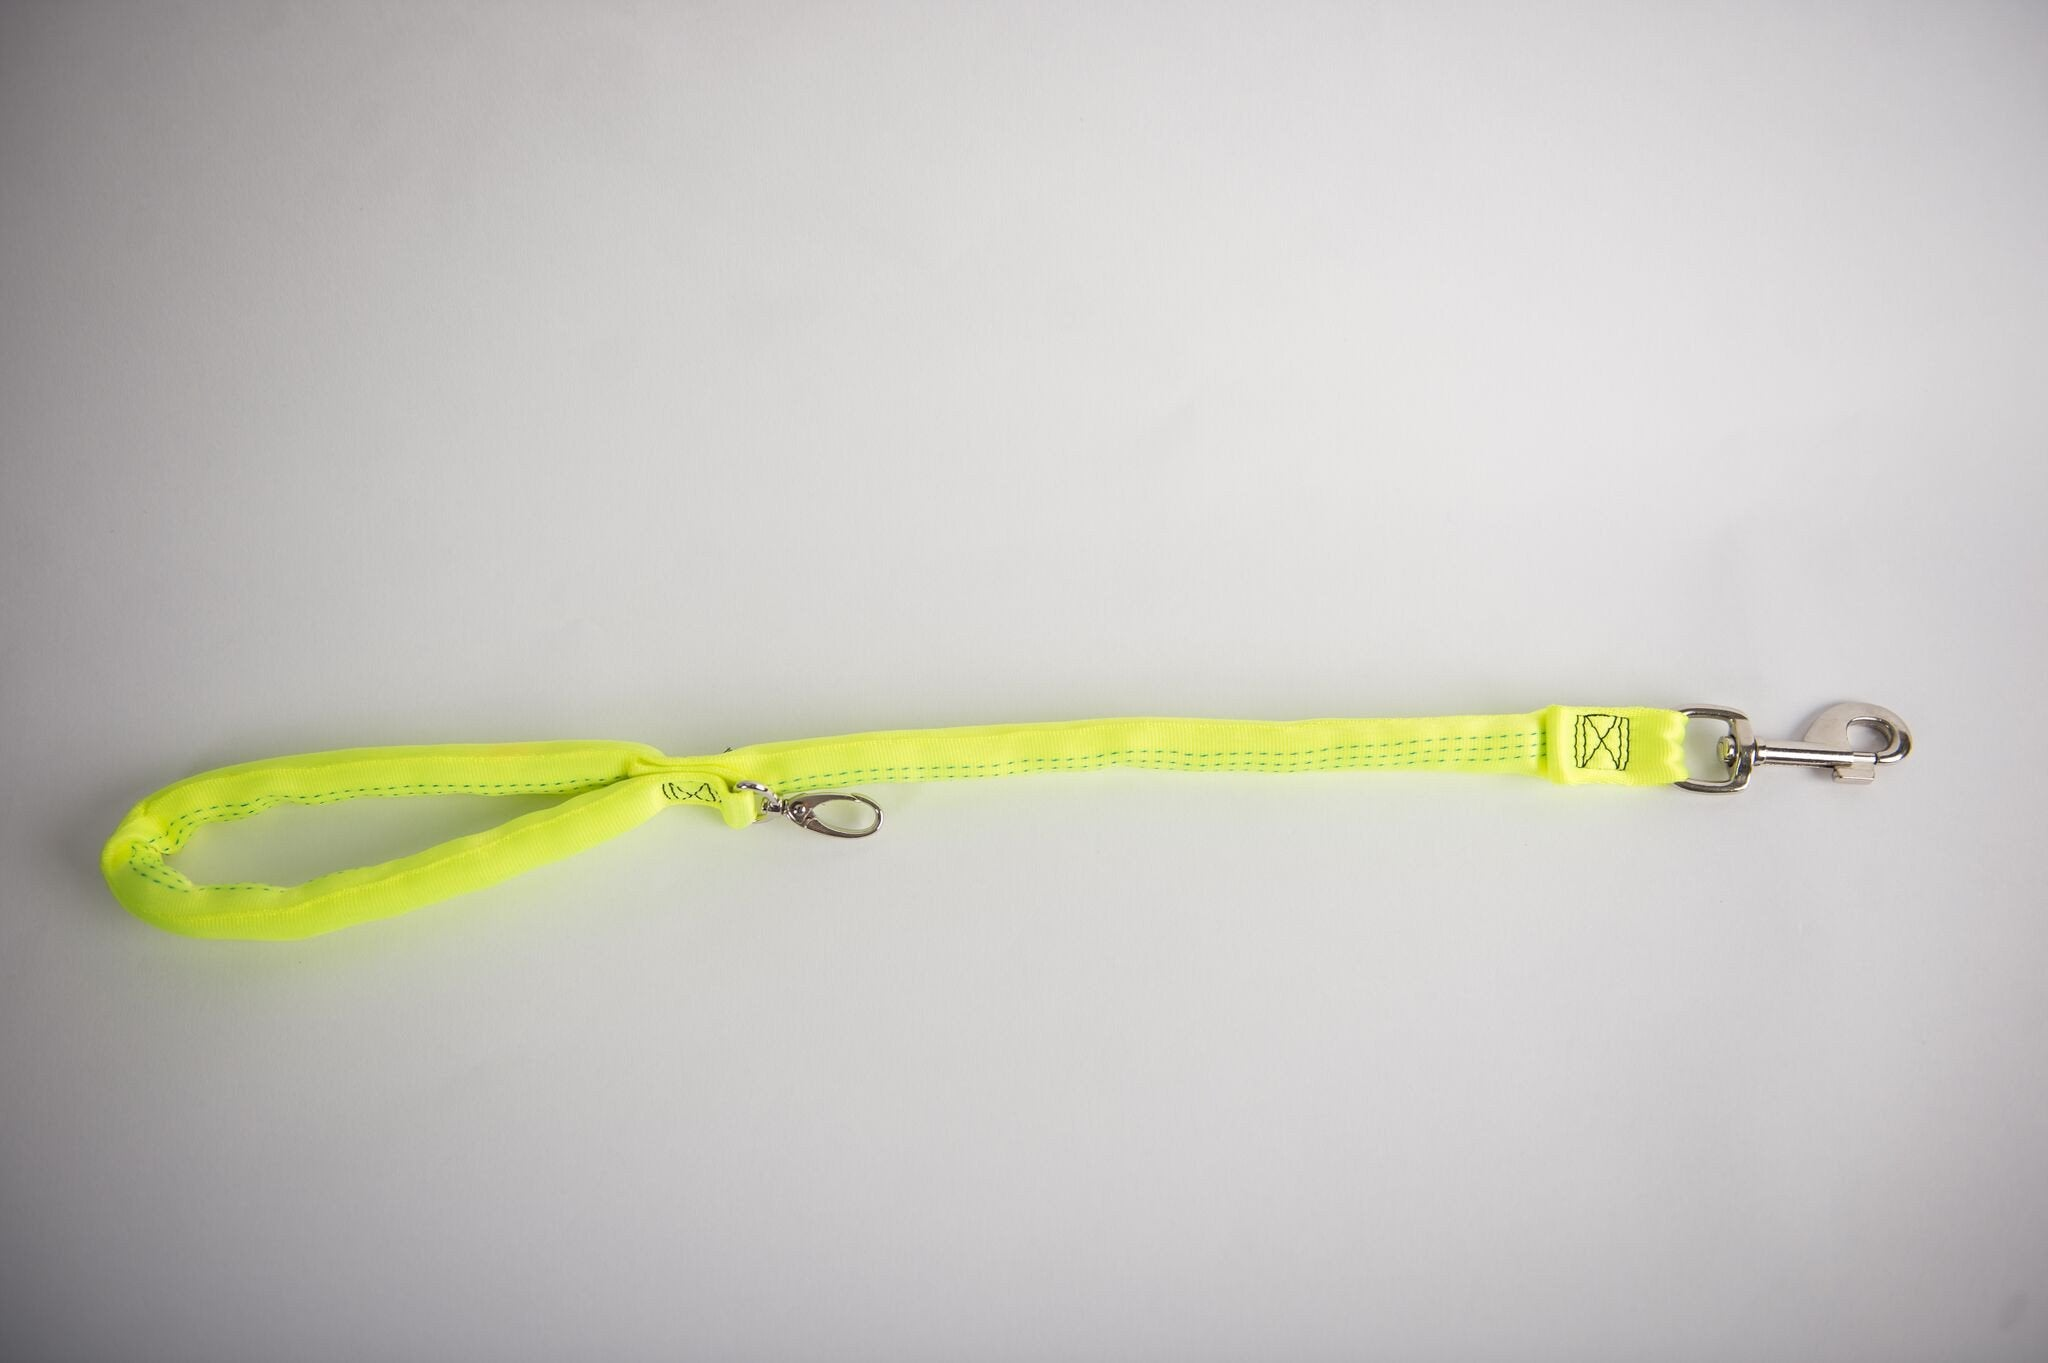 Yellow-Luv My Leash, 2-6 Foot option ,Lightweight, Padded,Dual Snap, 5 Leashes in 1 ,Made in U.S.A.